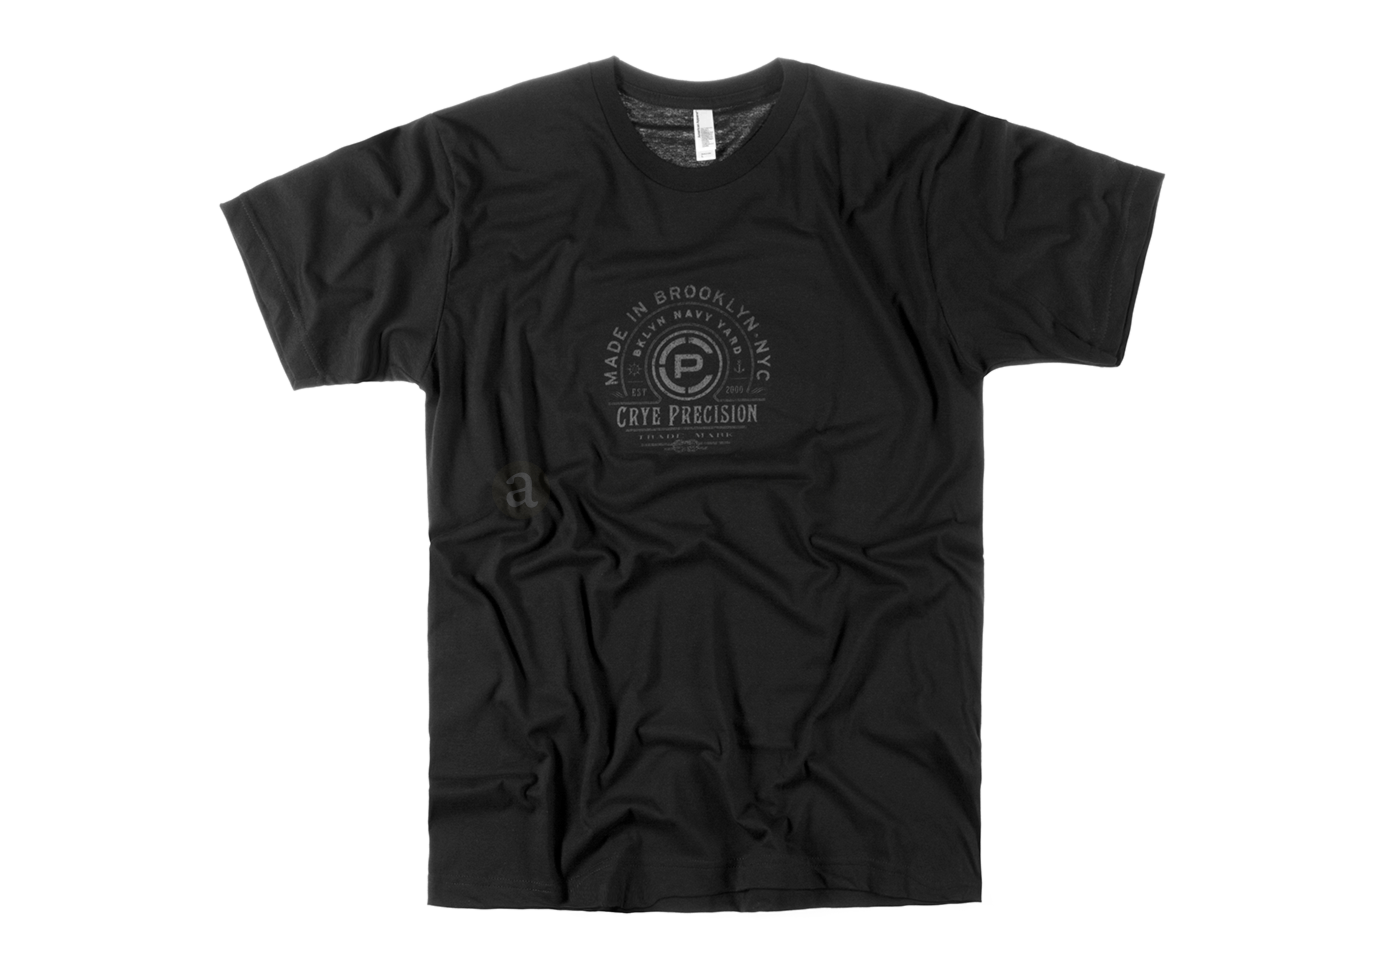 8221d96ff Made in Brooklyn Tee Black (Crye Precision) S - T-Shirts - Shirts ...